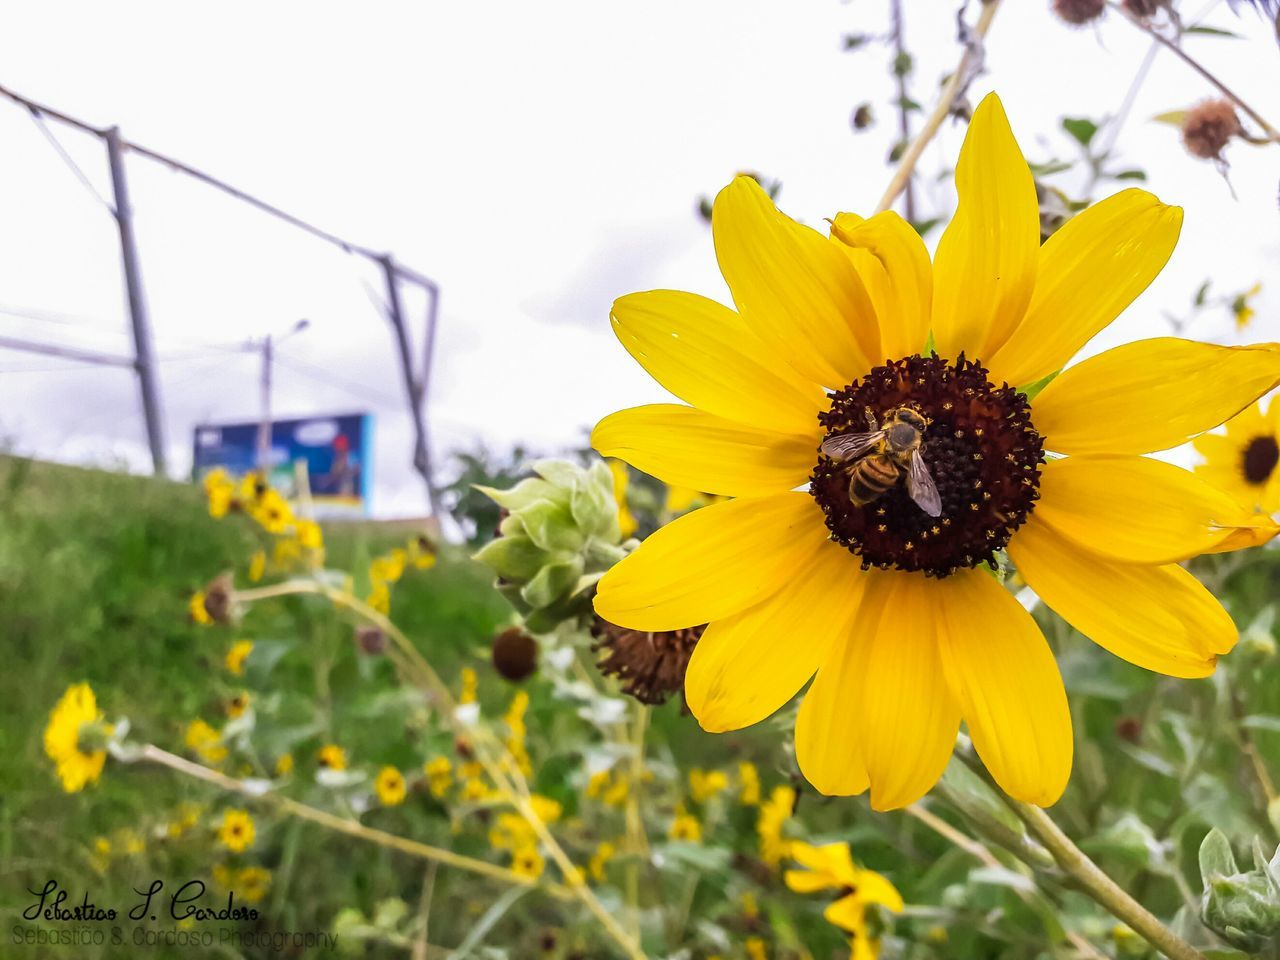 flower, yellow, petal, plant, beauty in nature, nature, fragility, animal themes, insect, flower head, growth, one animal, animals in the wild, freshness, no people, sunflower, day, animal wildlife, outdoors, pollen, bee, close-up, blooming, pollination, black-eyed susan